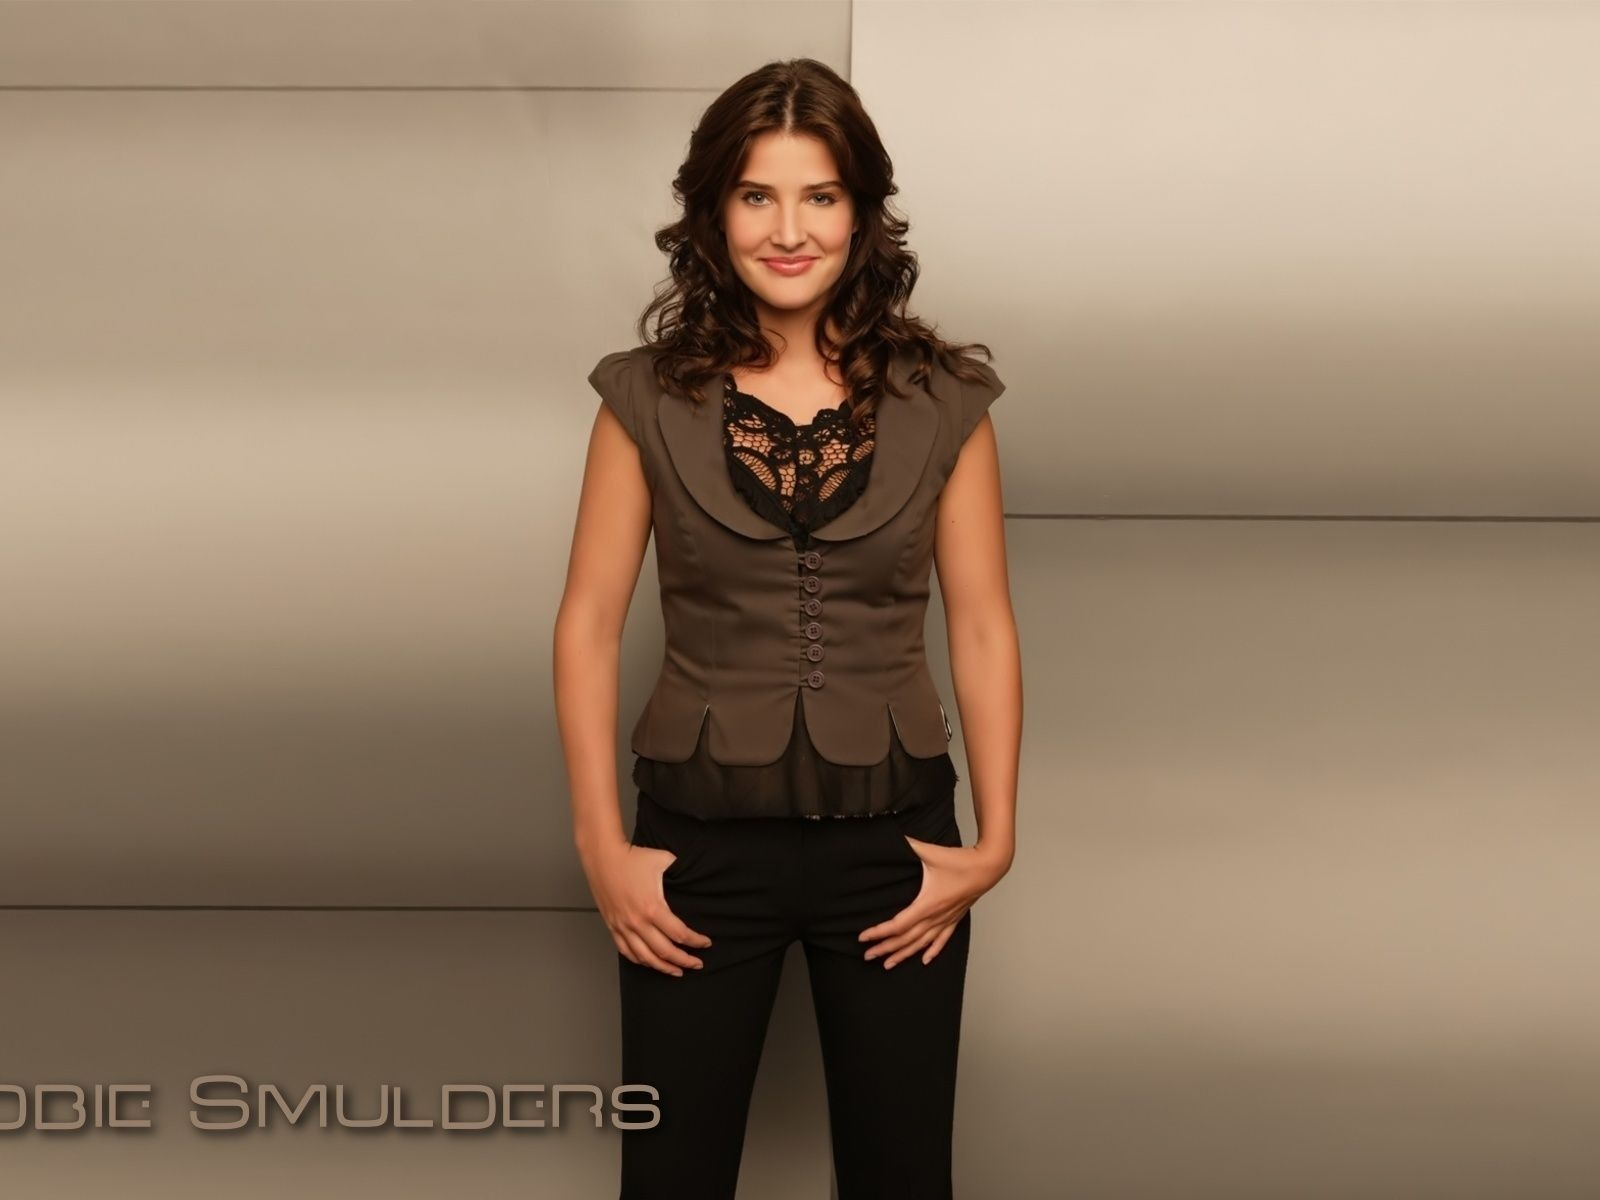 Cobie Smulders #008 - 1600x1200 Wallpapers Pictures Photos Images